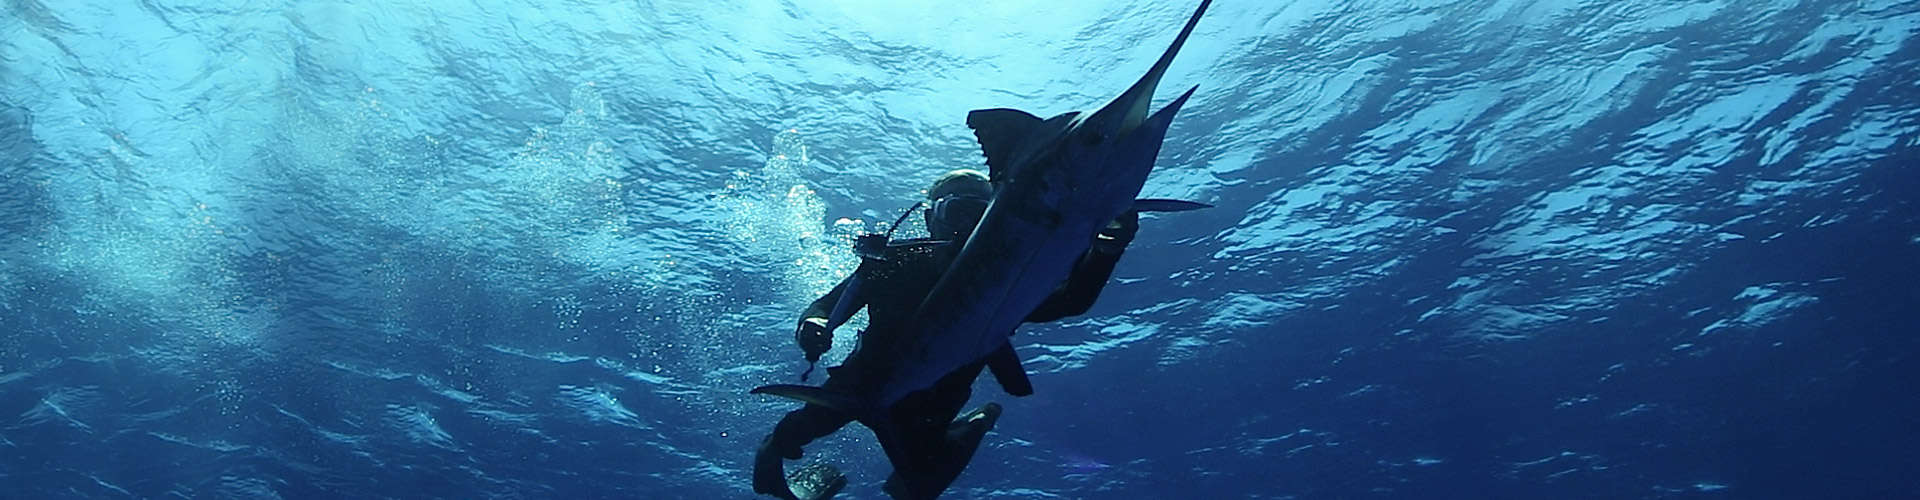 Isla Mujeres Fishing Charters, Blue Marlin Fishing trips Mexico